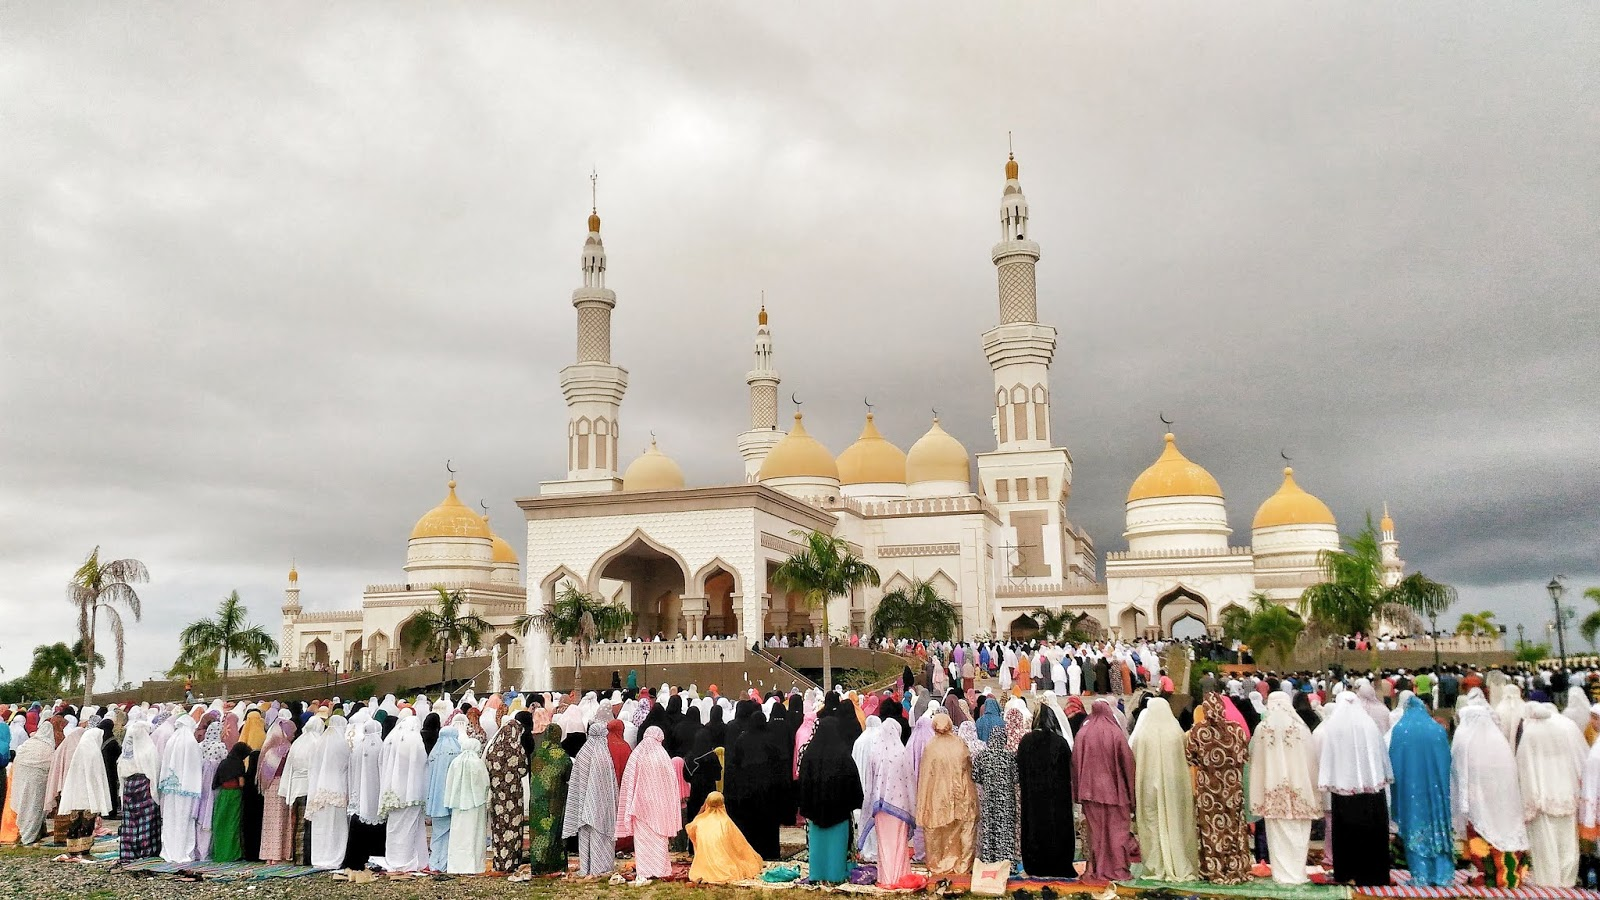 Eid Congregational Prayer at the Grand Mosque in Cotabato City